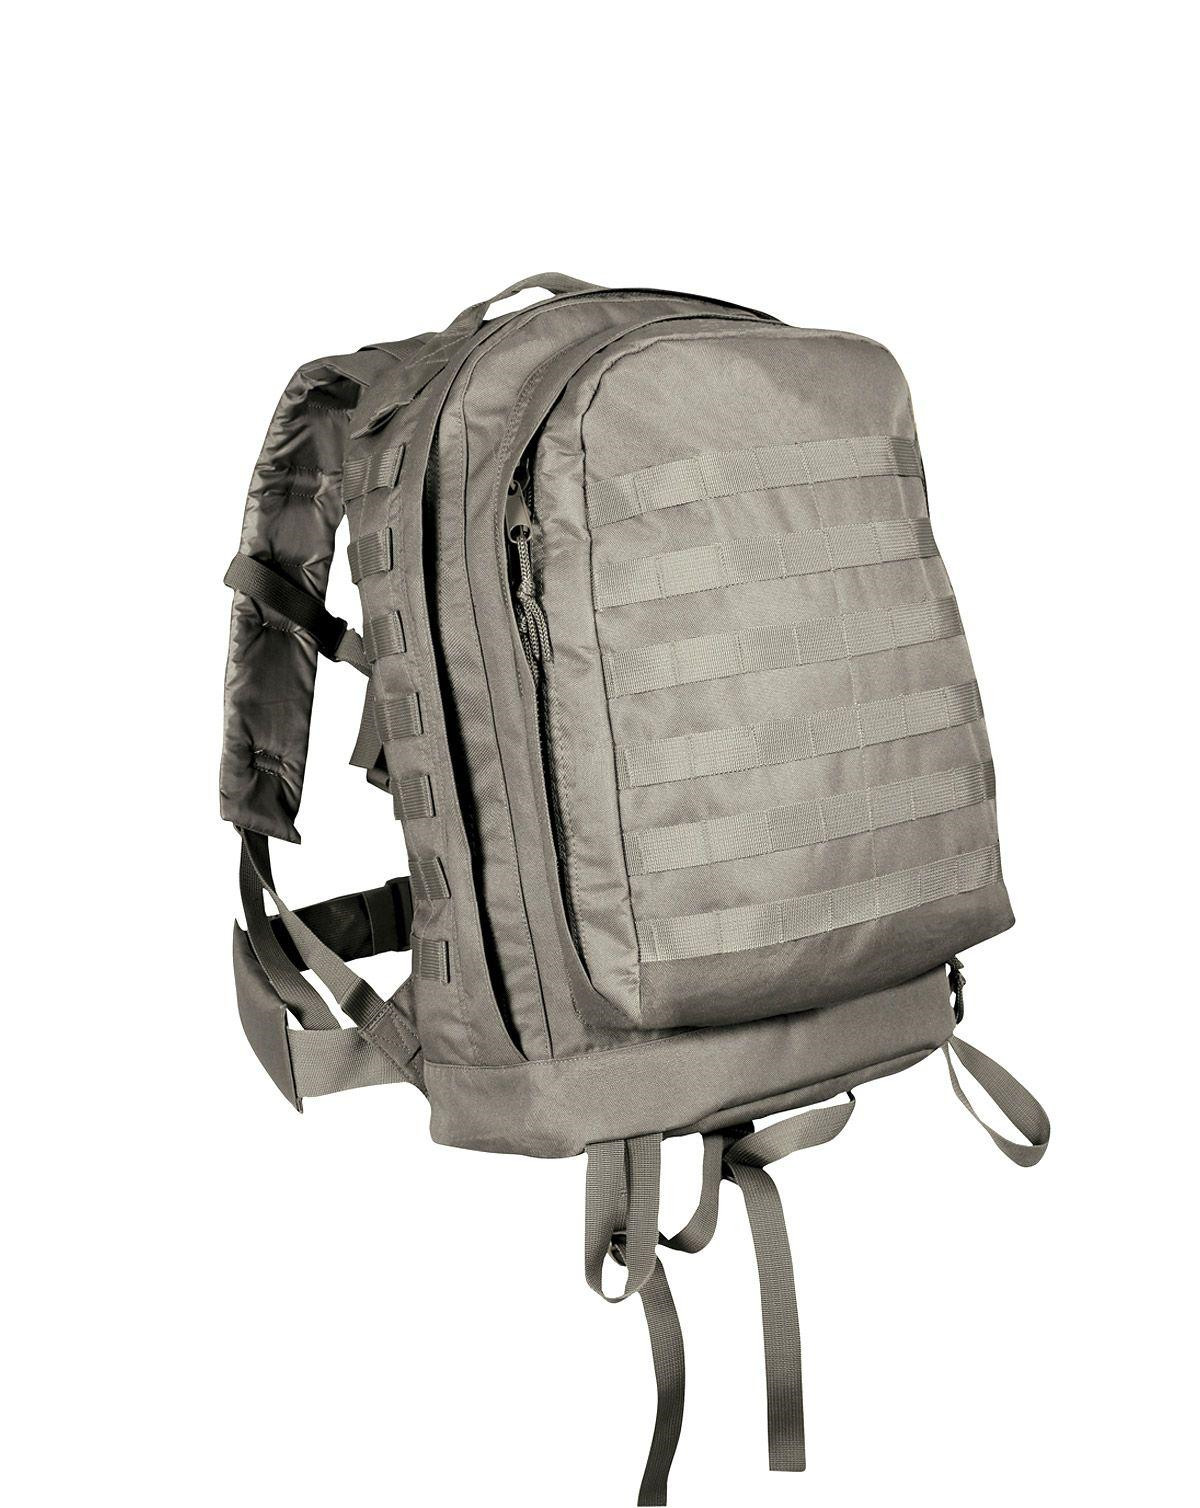 Image of   Rothco MOLLE 3-day Assault Pack (Blad Grøn, One Size)